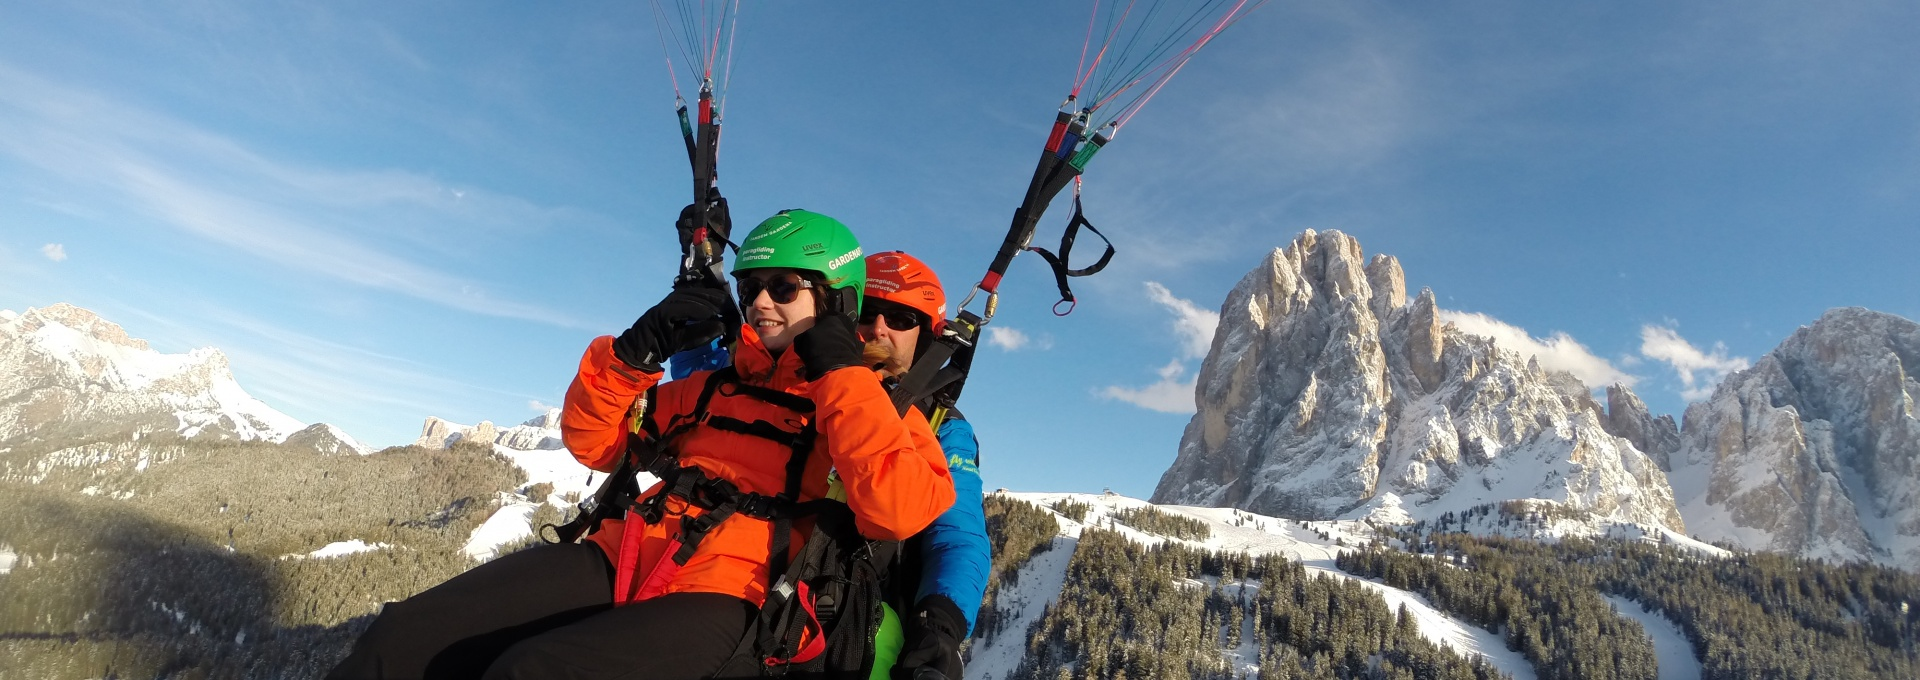 Tandem flights in Winter Dolomites